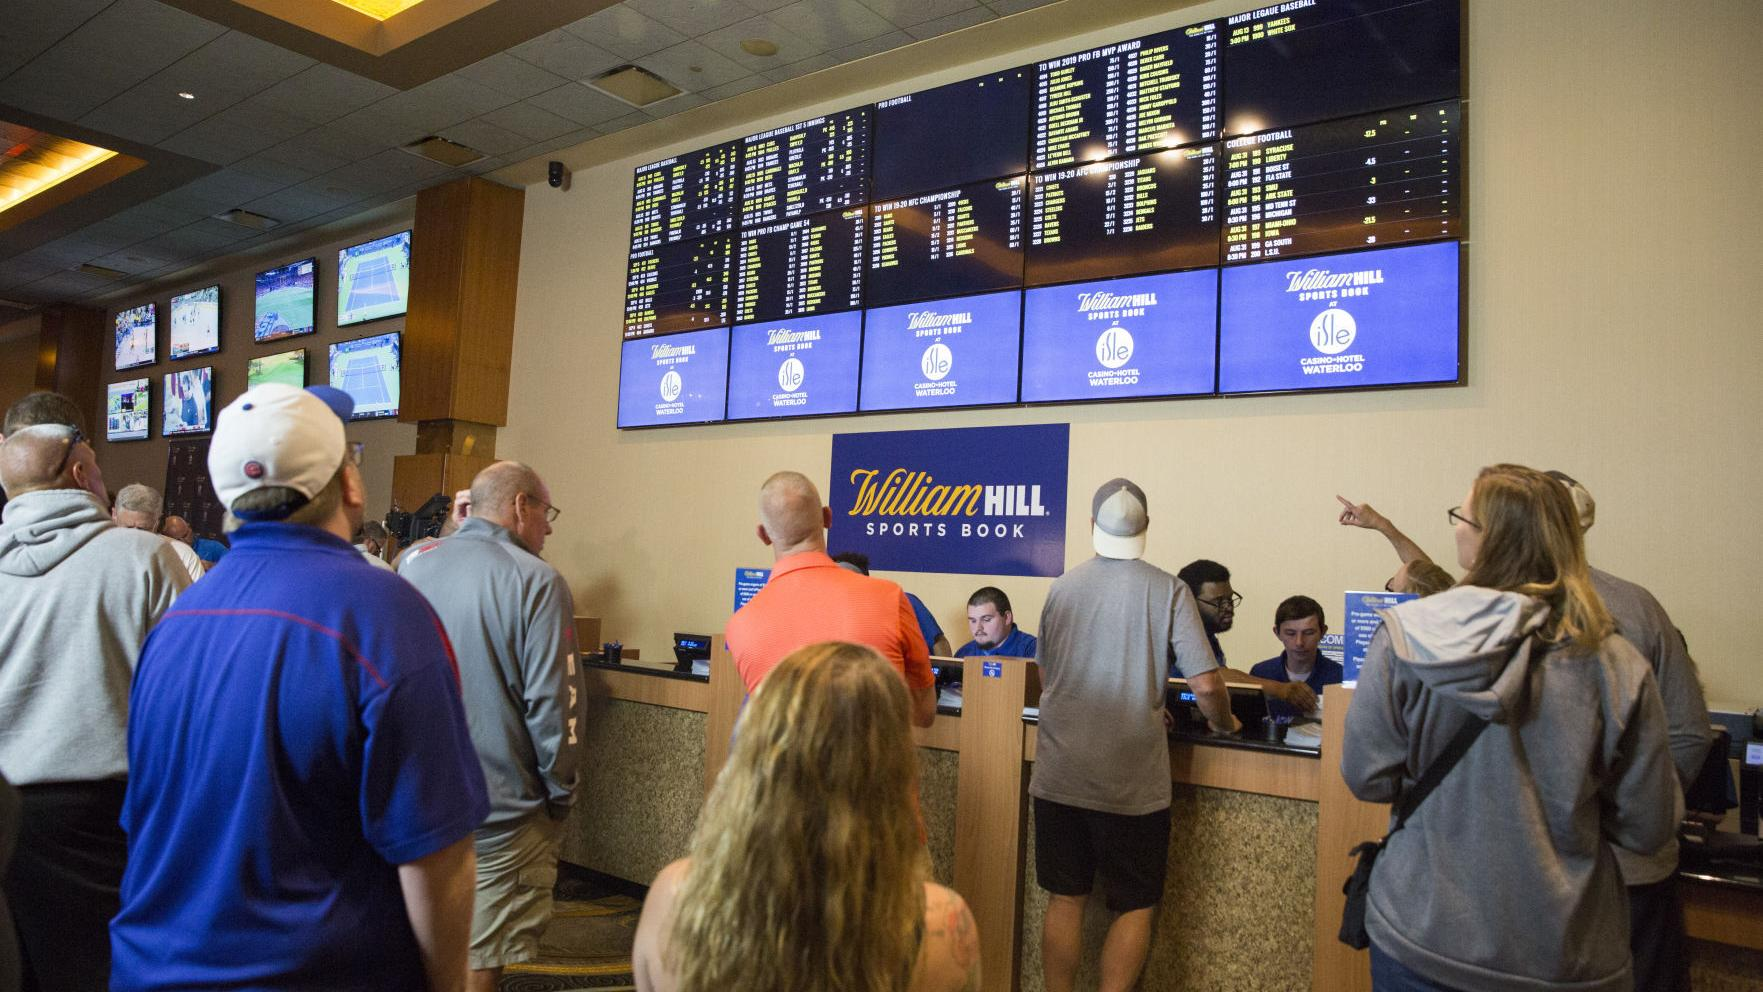 William Hill mobile betting app now available in Iowa   Business - Local  News   wcfcourier.com